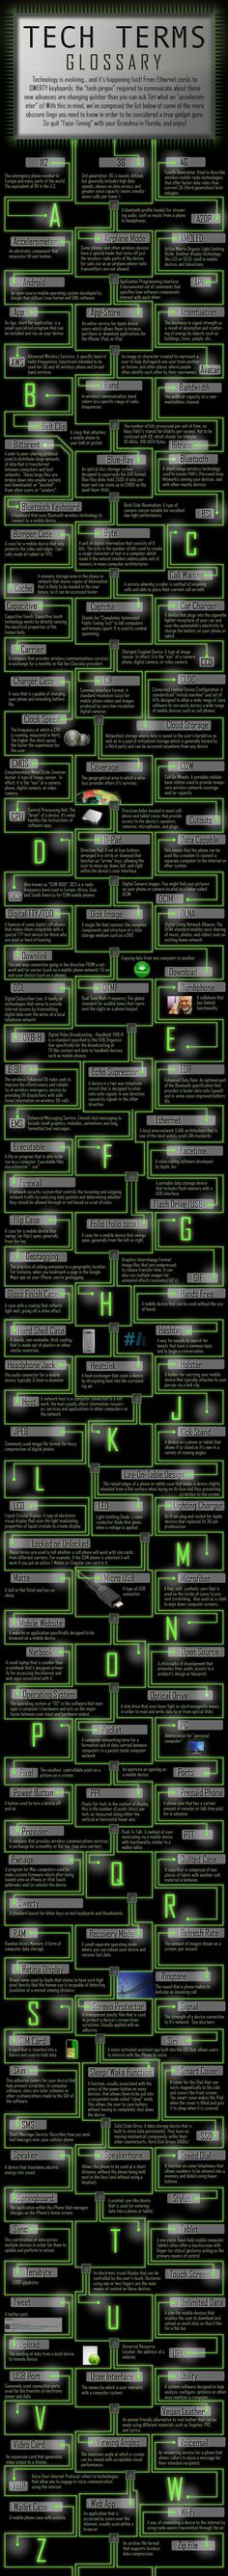 tech-lingo-terms-glossary-infographic